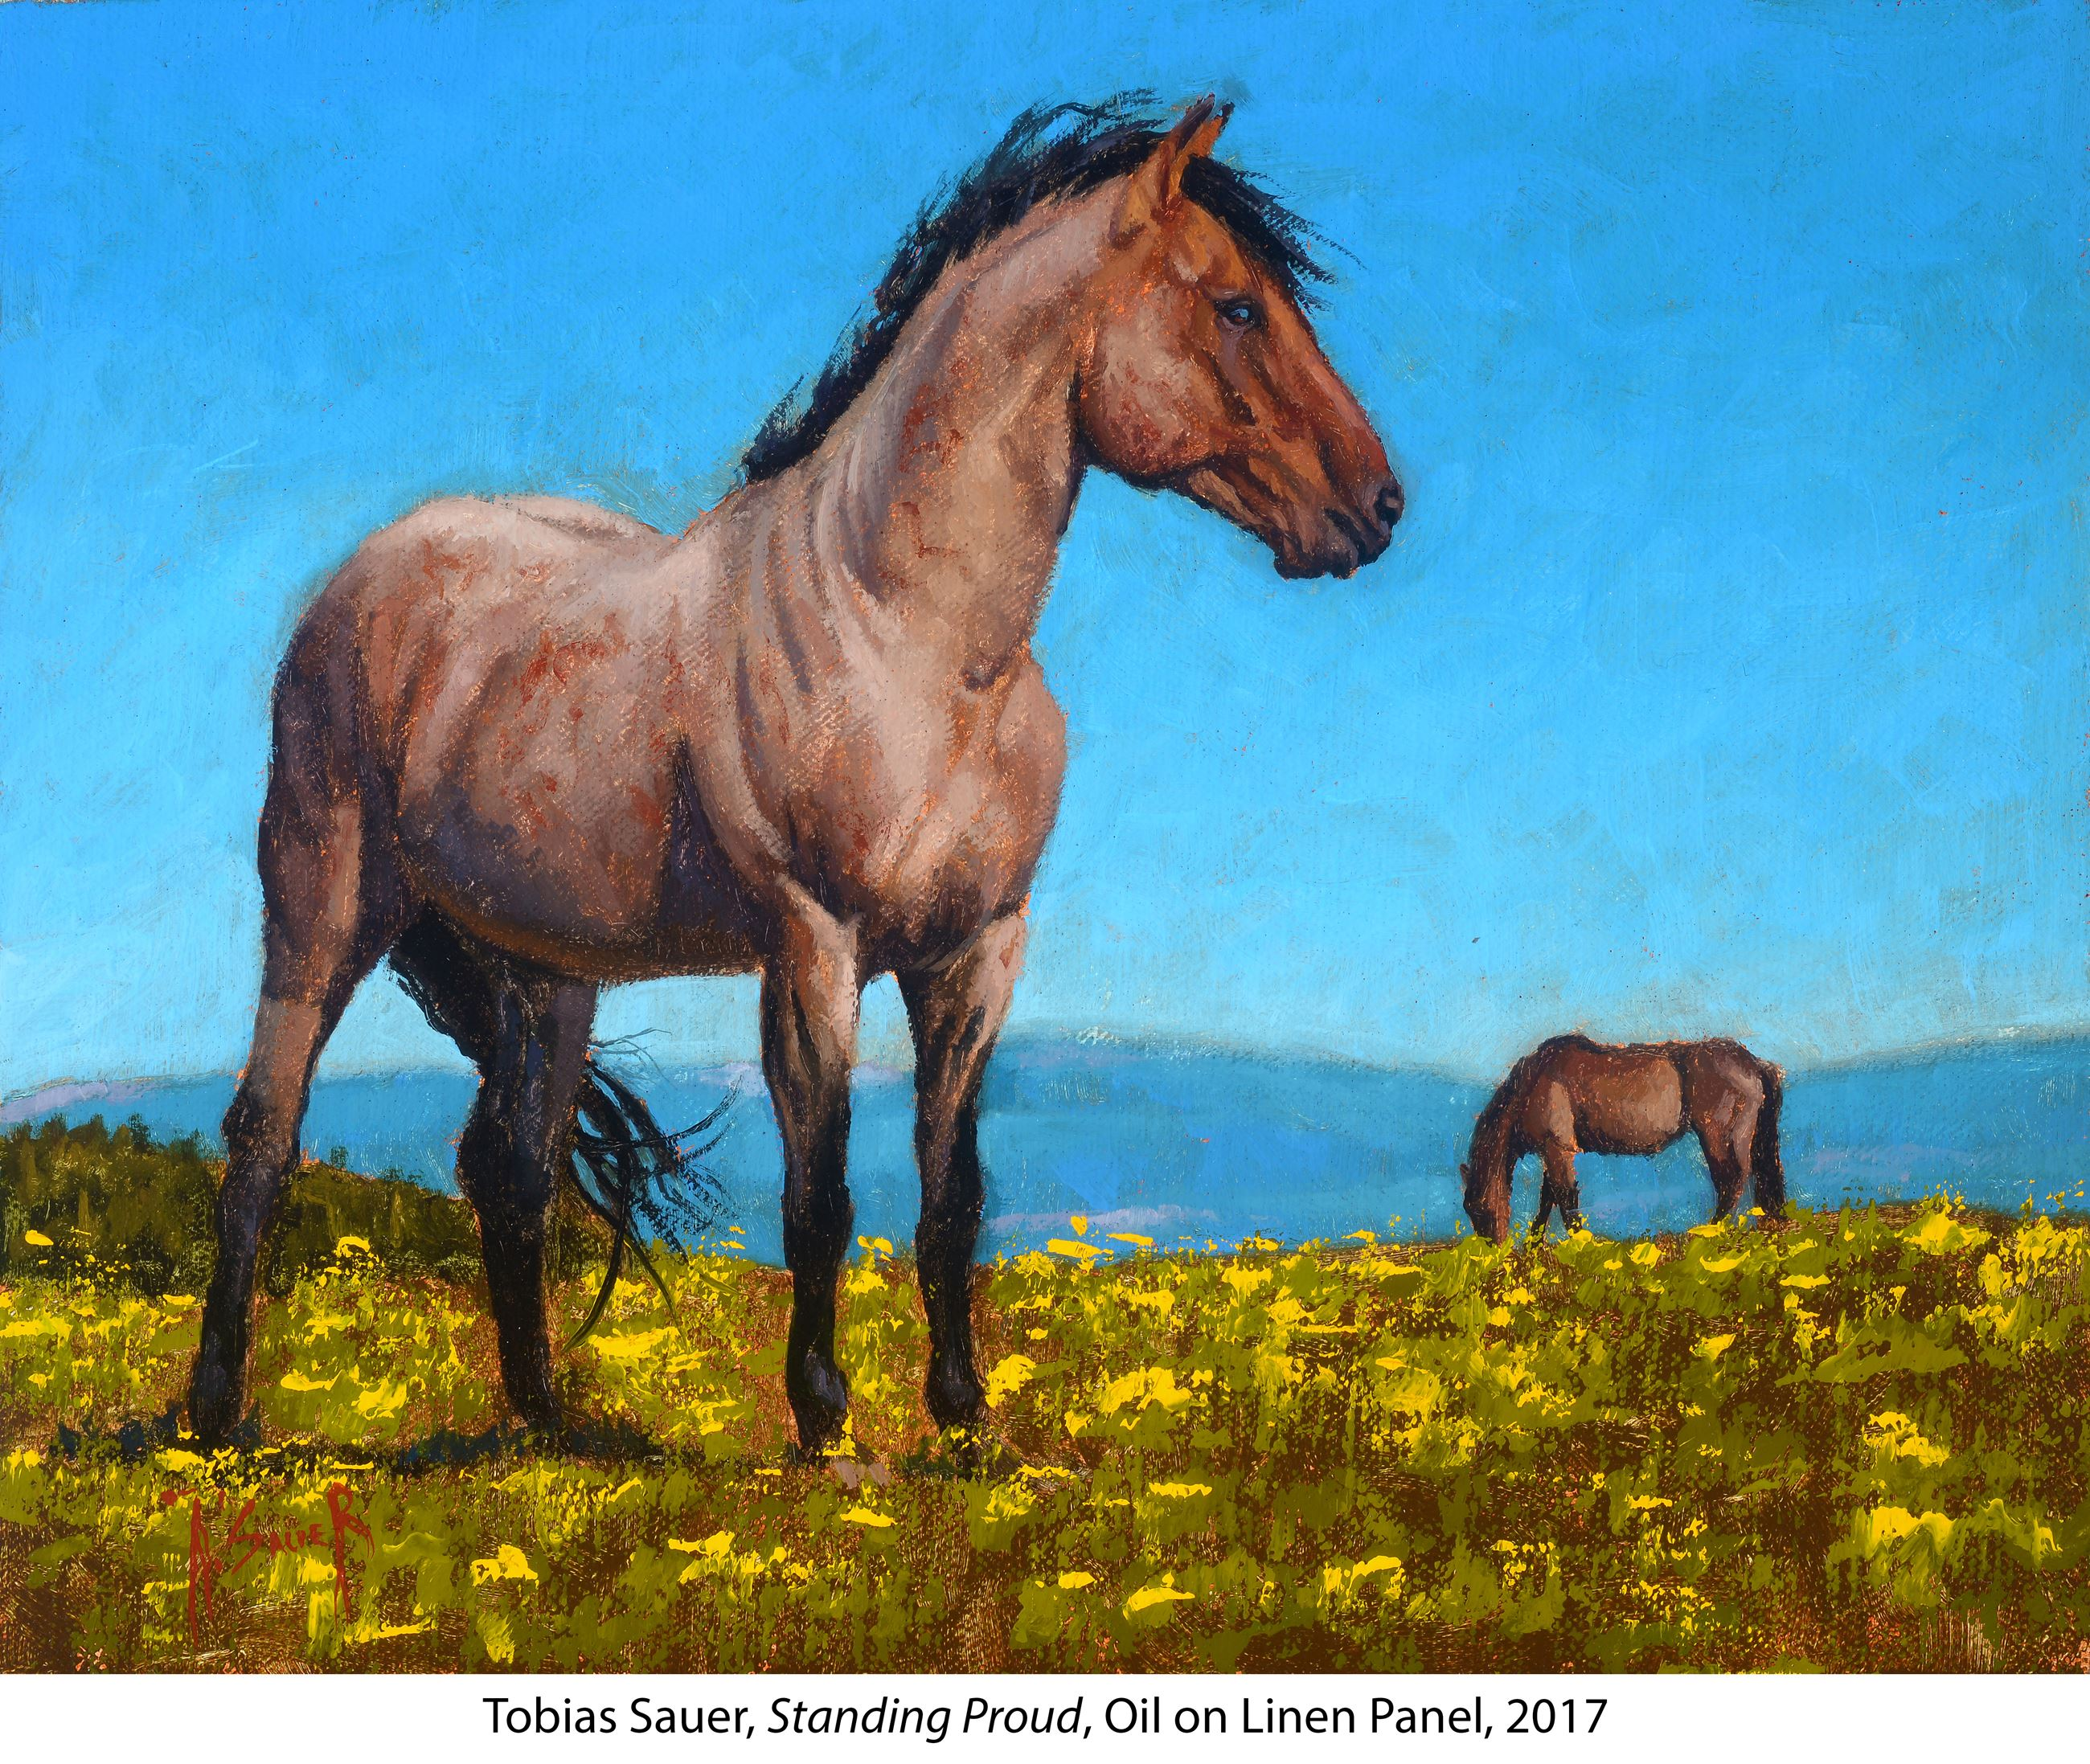 Two brown horses standing in a field